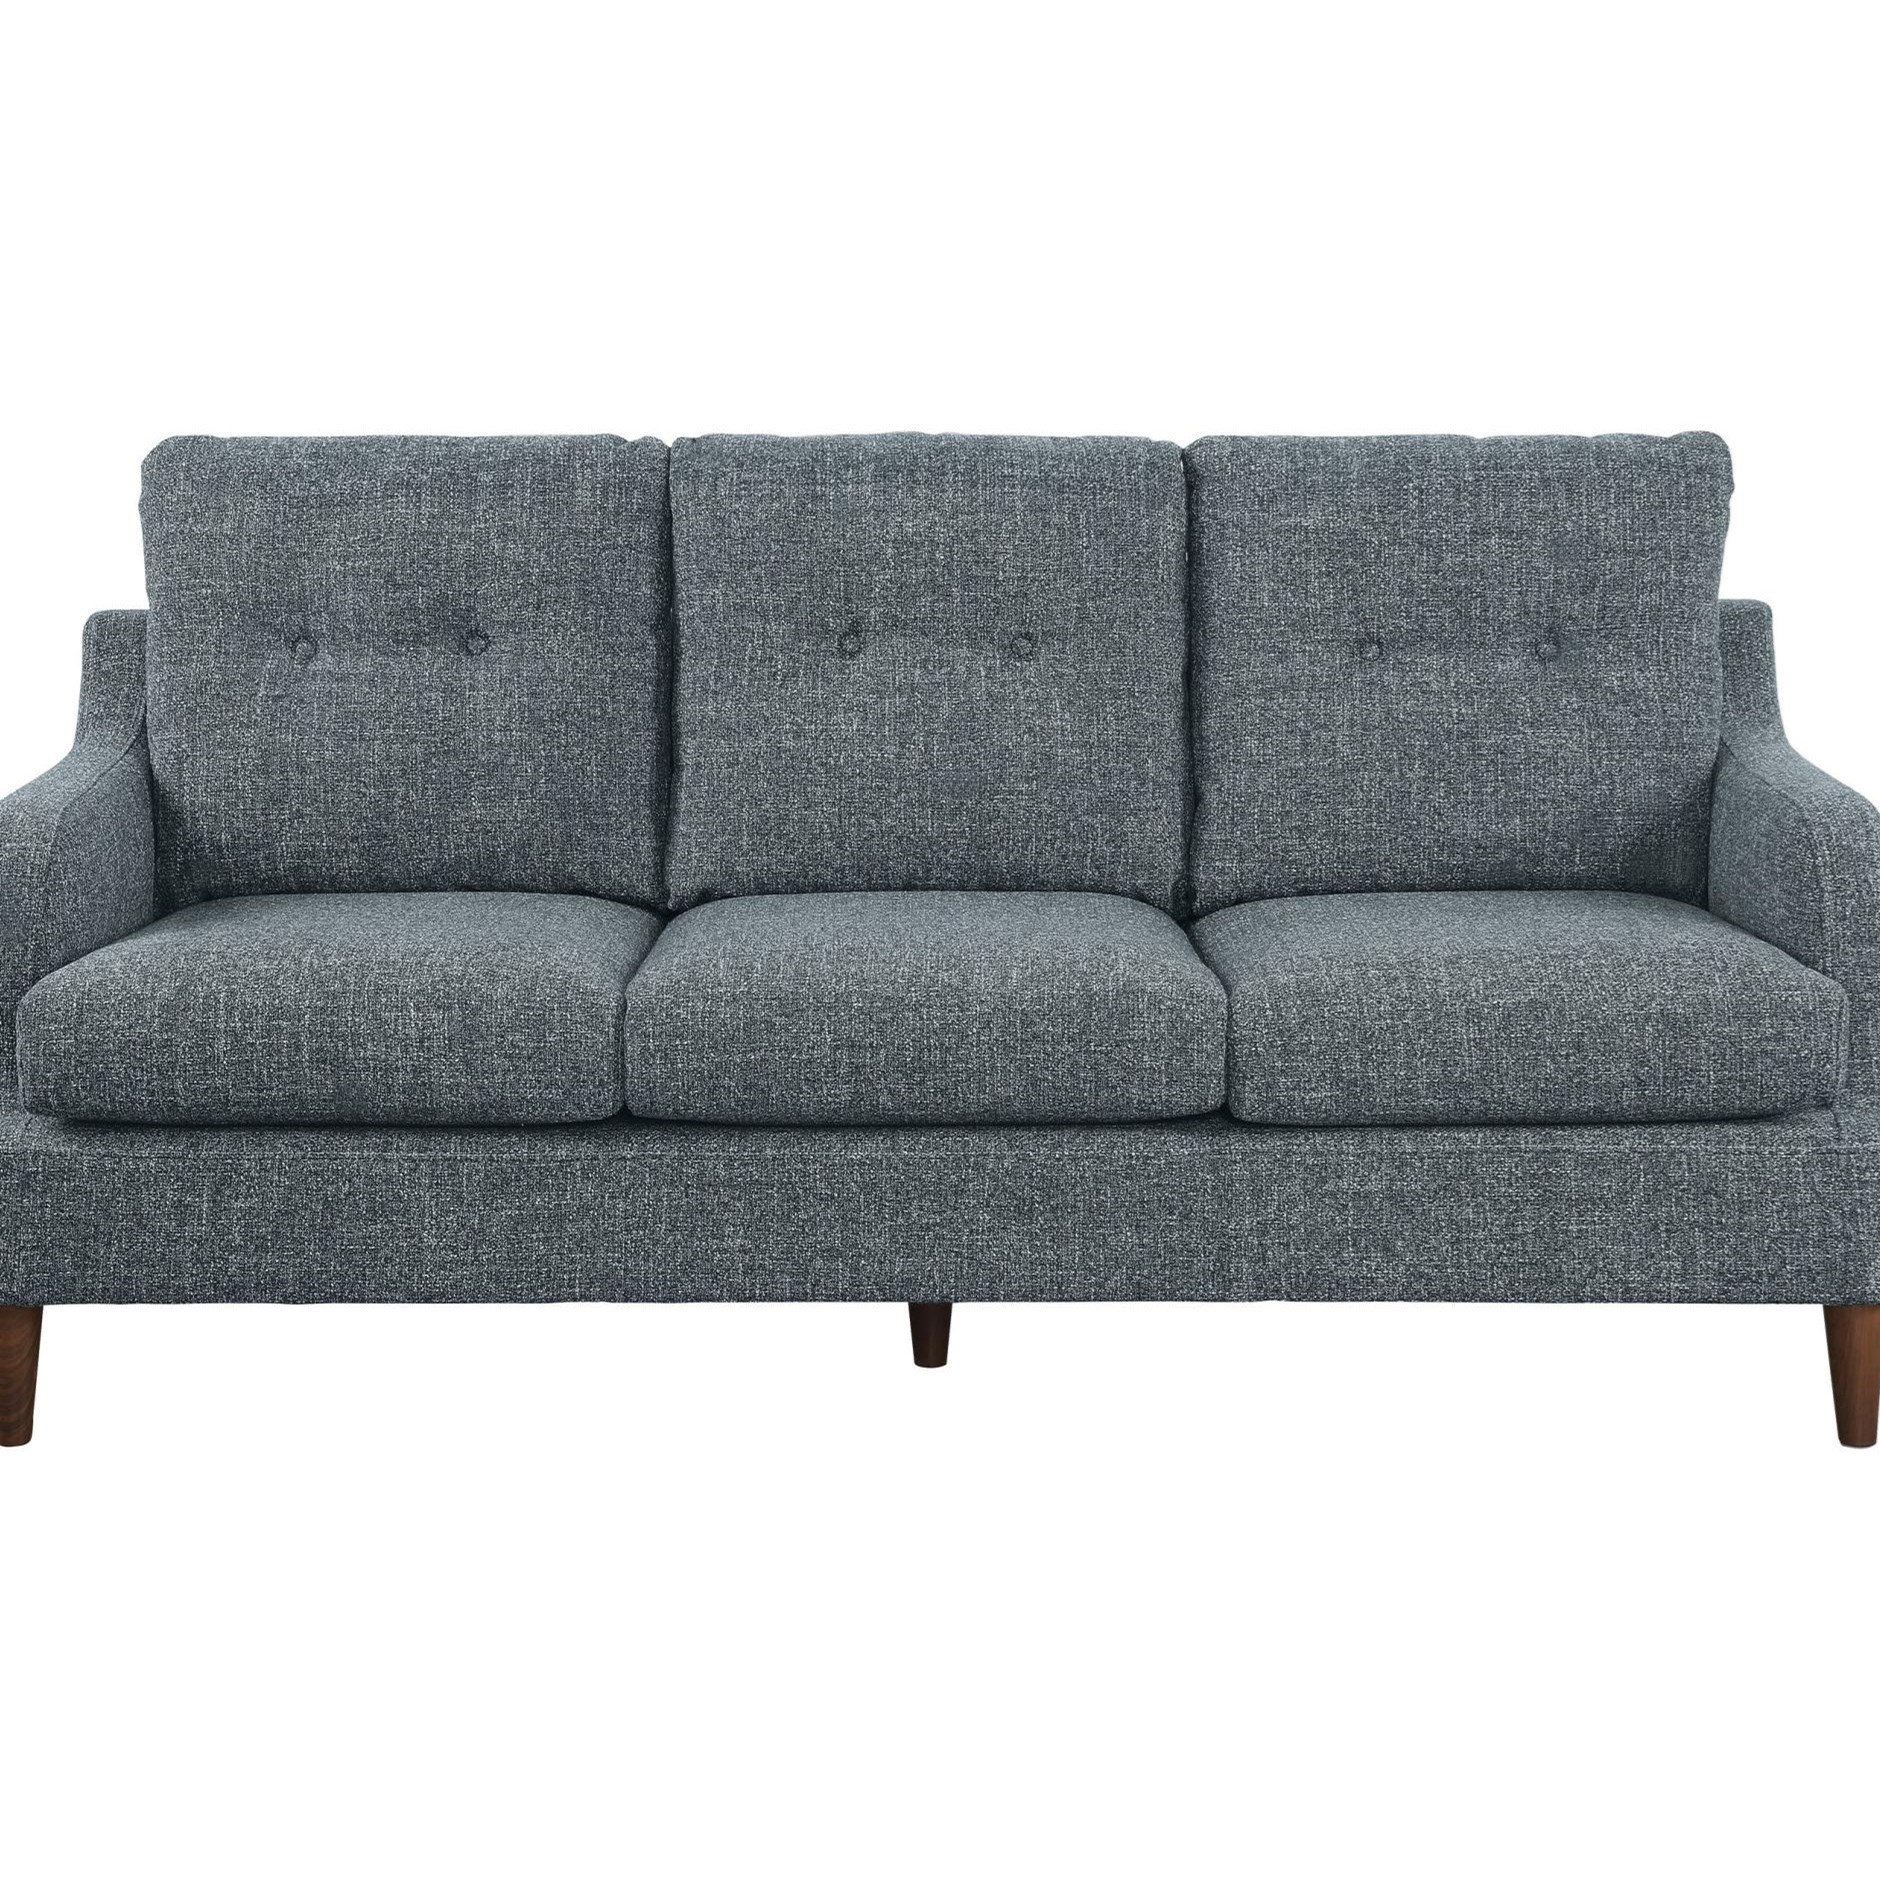 Cagle Sofa by Homelegance Furniture at Del Sol Furniture